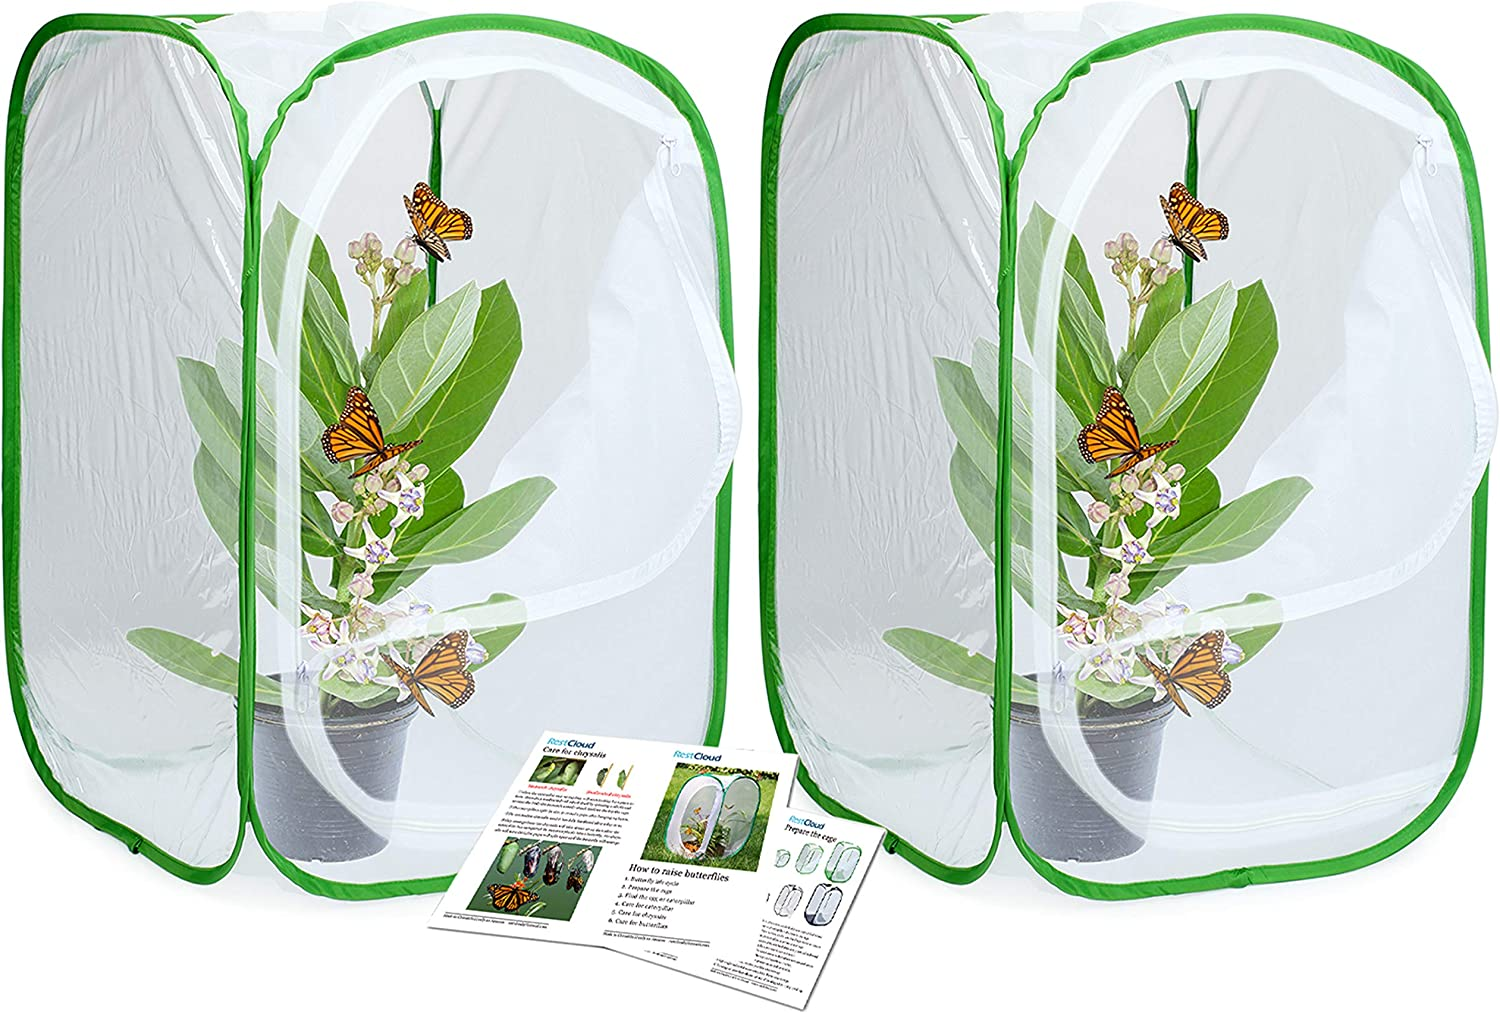 RESTCLOUD 2-Pack Insect and Butterfly Habitat Cage Terrarium Pop-up 24 Inches Tall